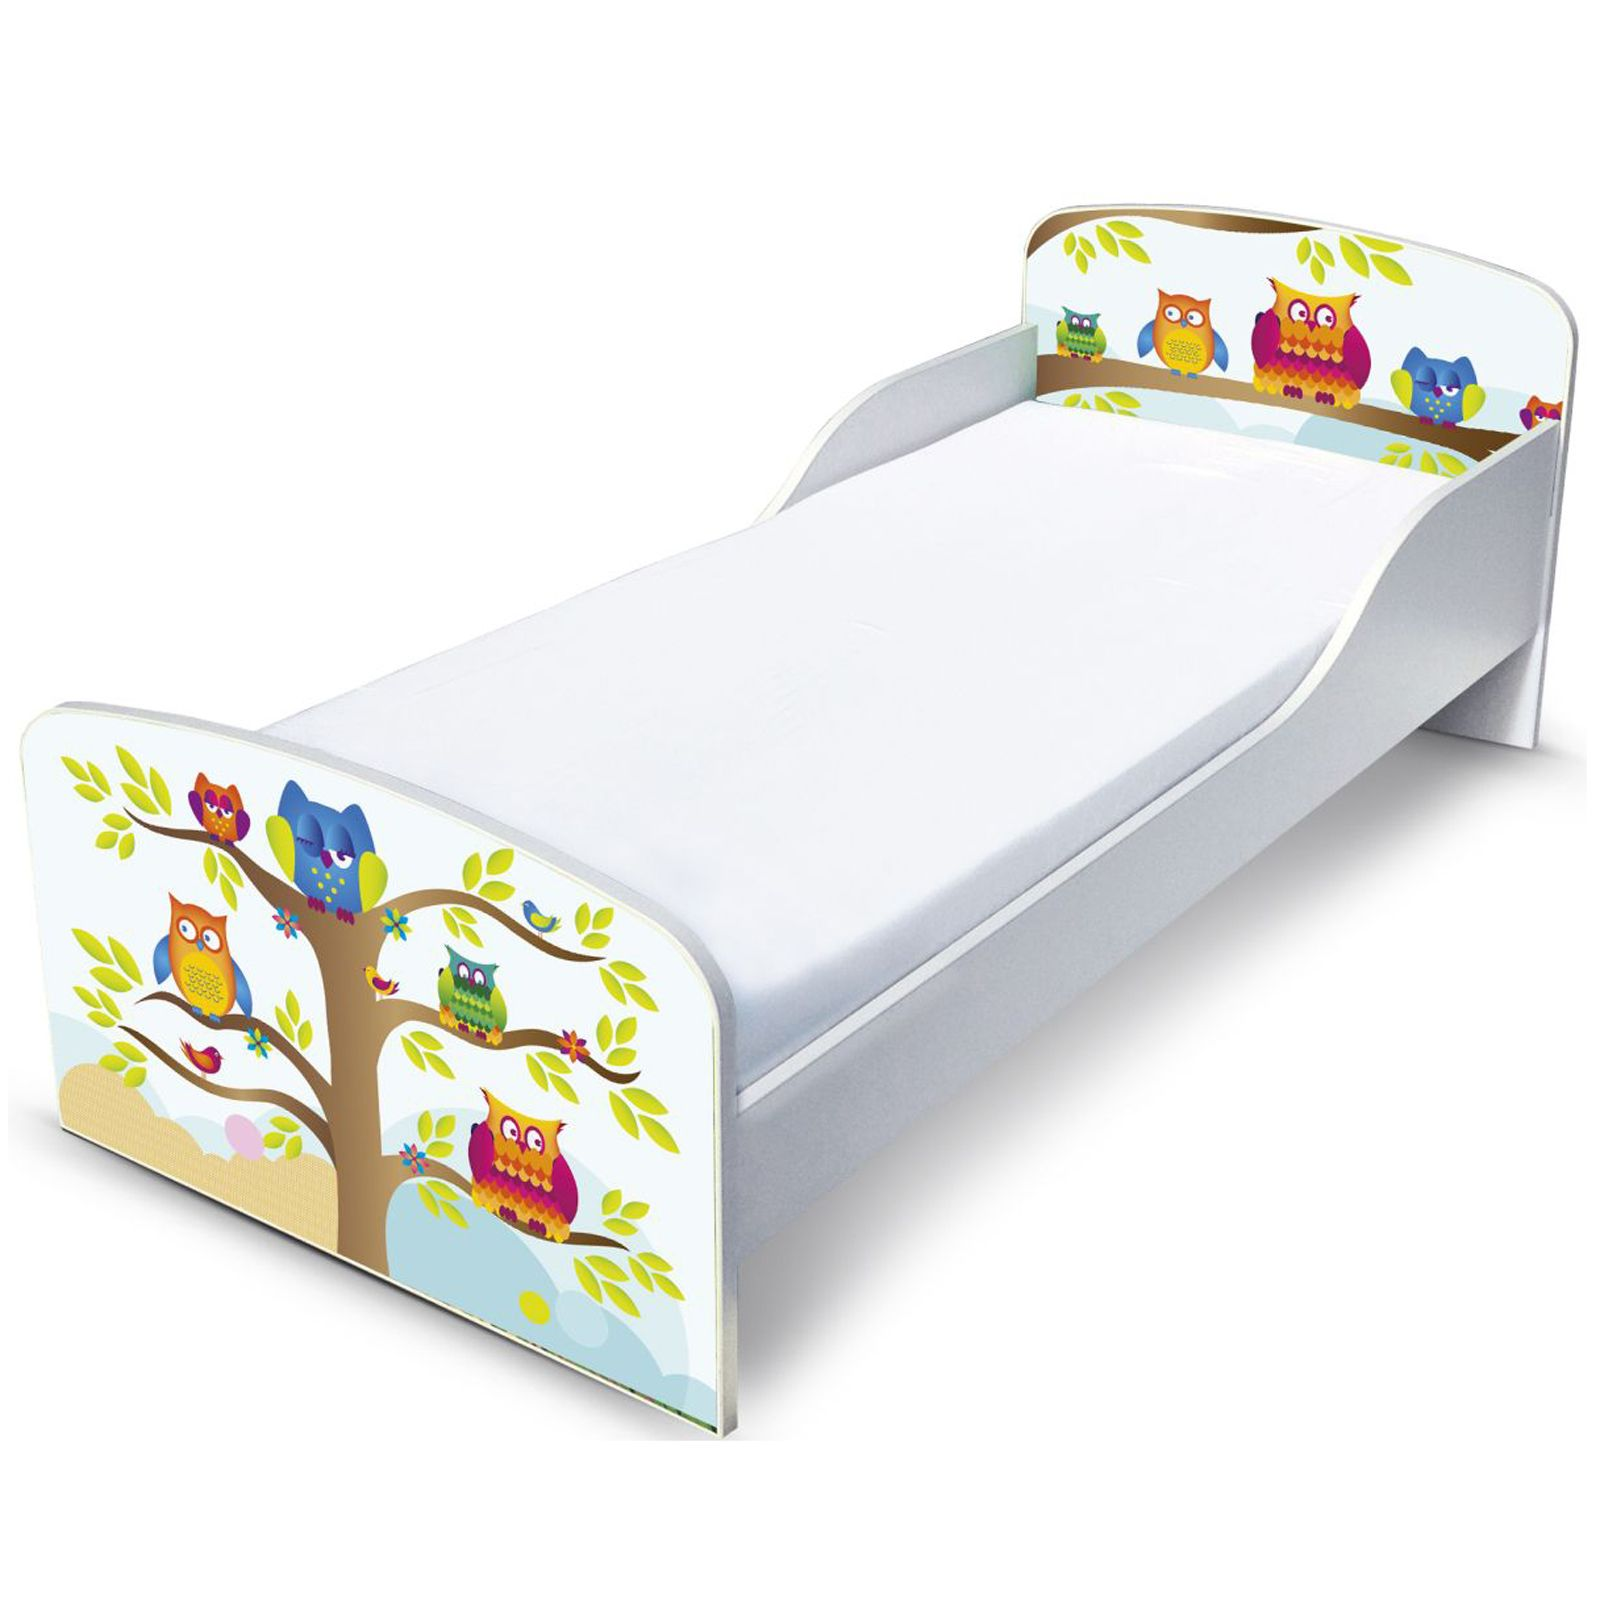 TODDLER BEDS VARIOUS GREAT DESIGNS KIDS BEDROOM NURSERY